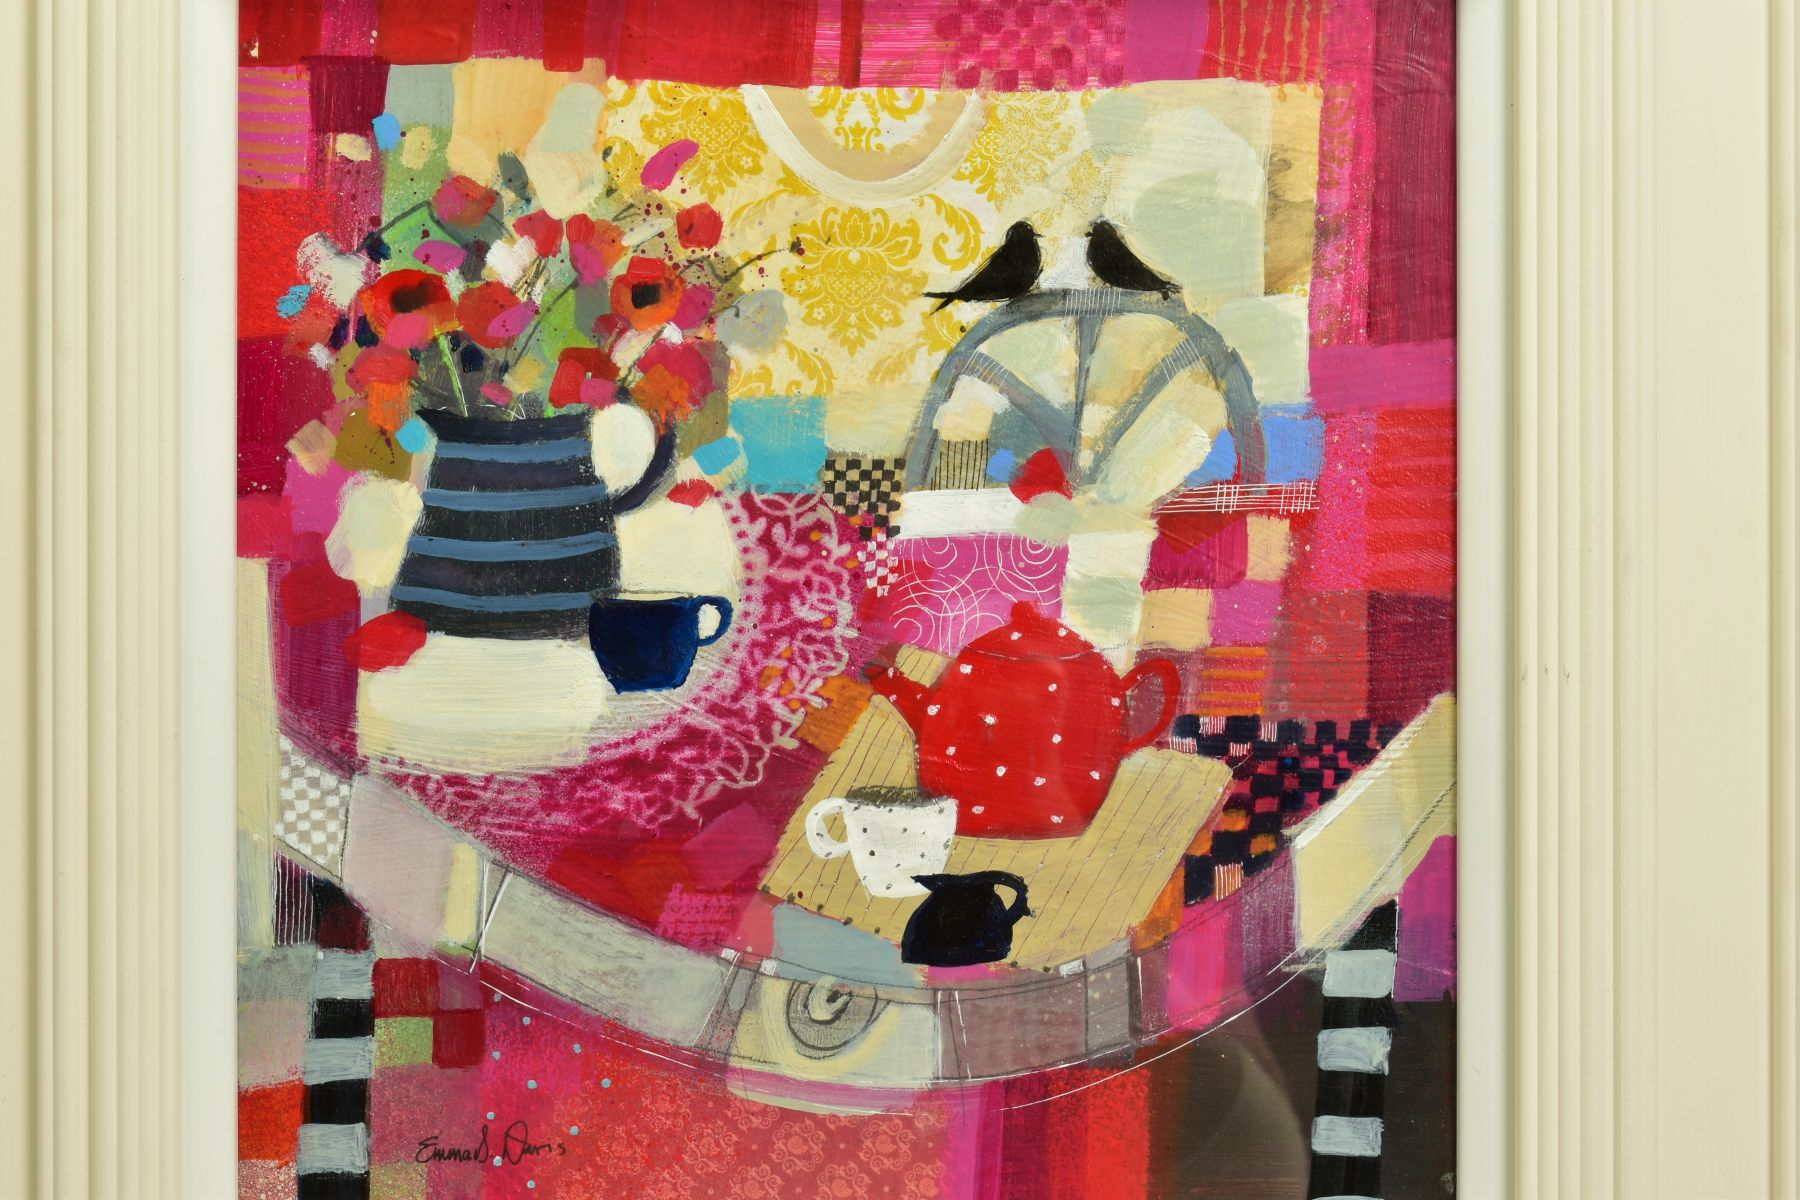 EMMA S. DAVIS (SCOTTISH 1975), 'Tabletop Textiles' a colourful still life study, signed bottom left, - Image 2 of 6